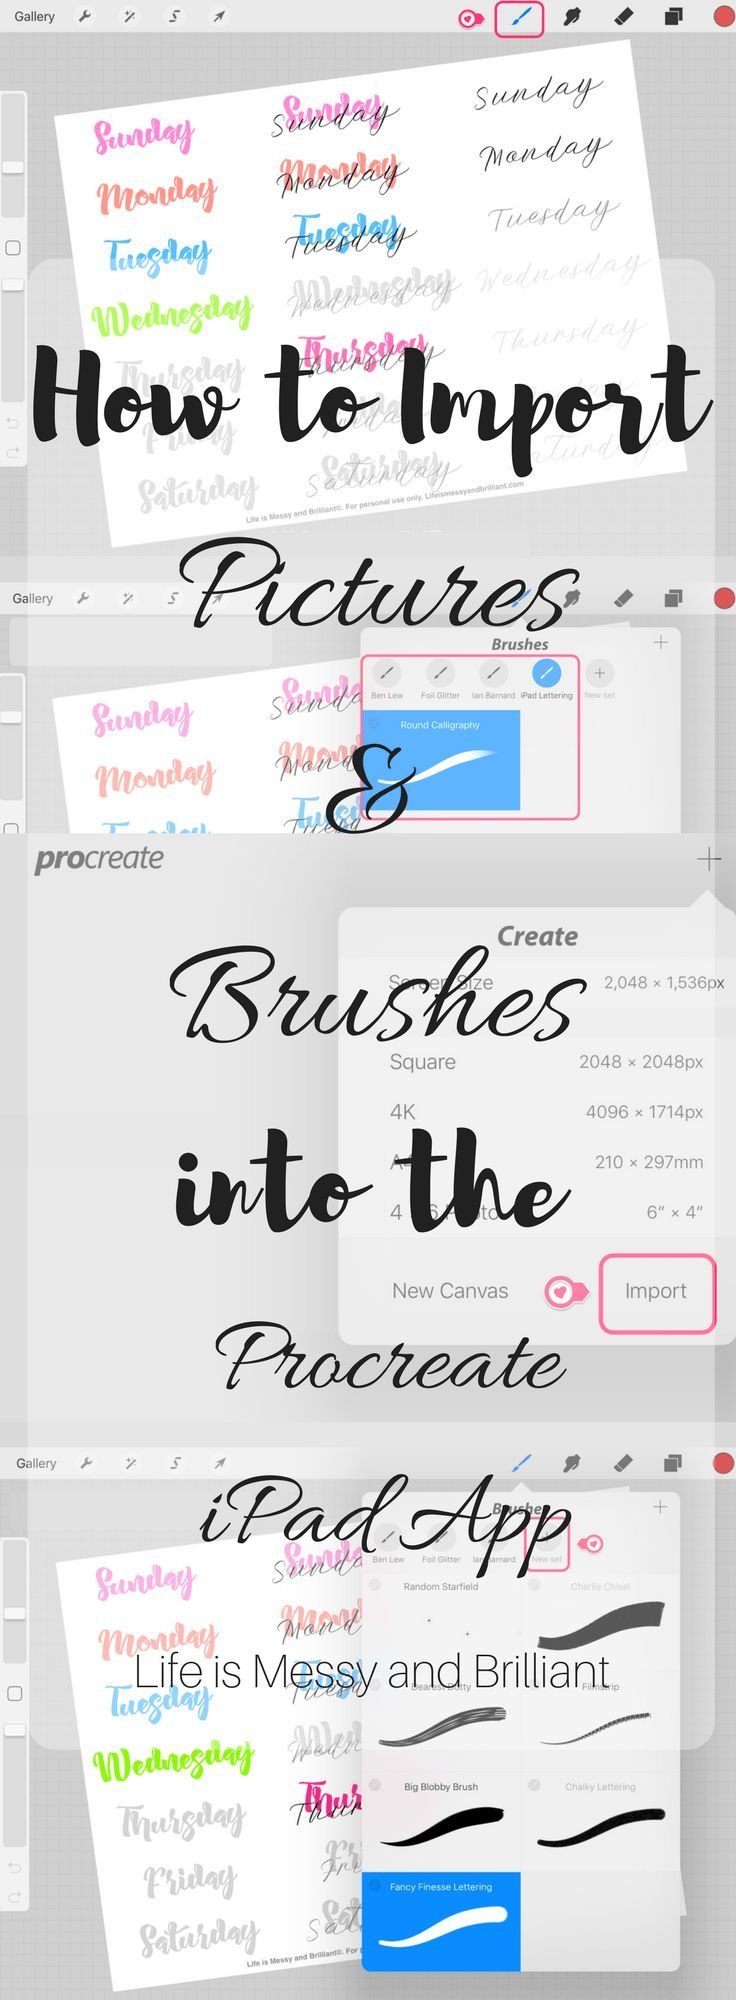 Predownload: How To Import Pictures And Brushes Into The Procreate Ipad App Ipad Lettering Procreate Procreate Ipad Lettering [ 2000 x 736 Pixel ]